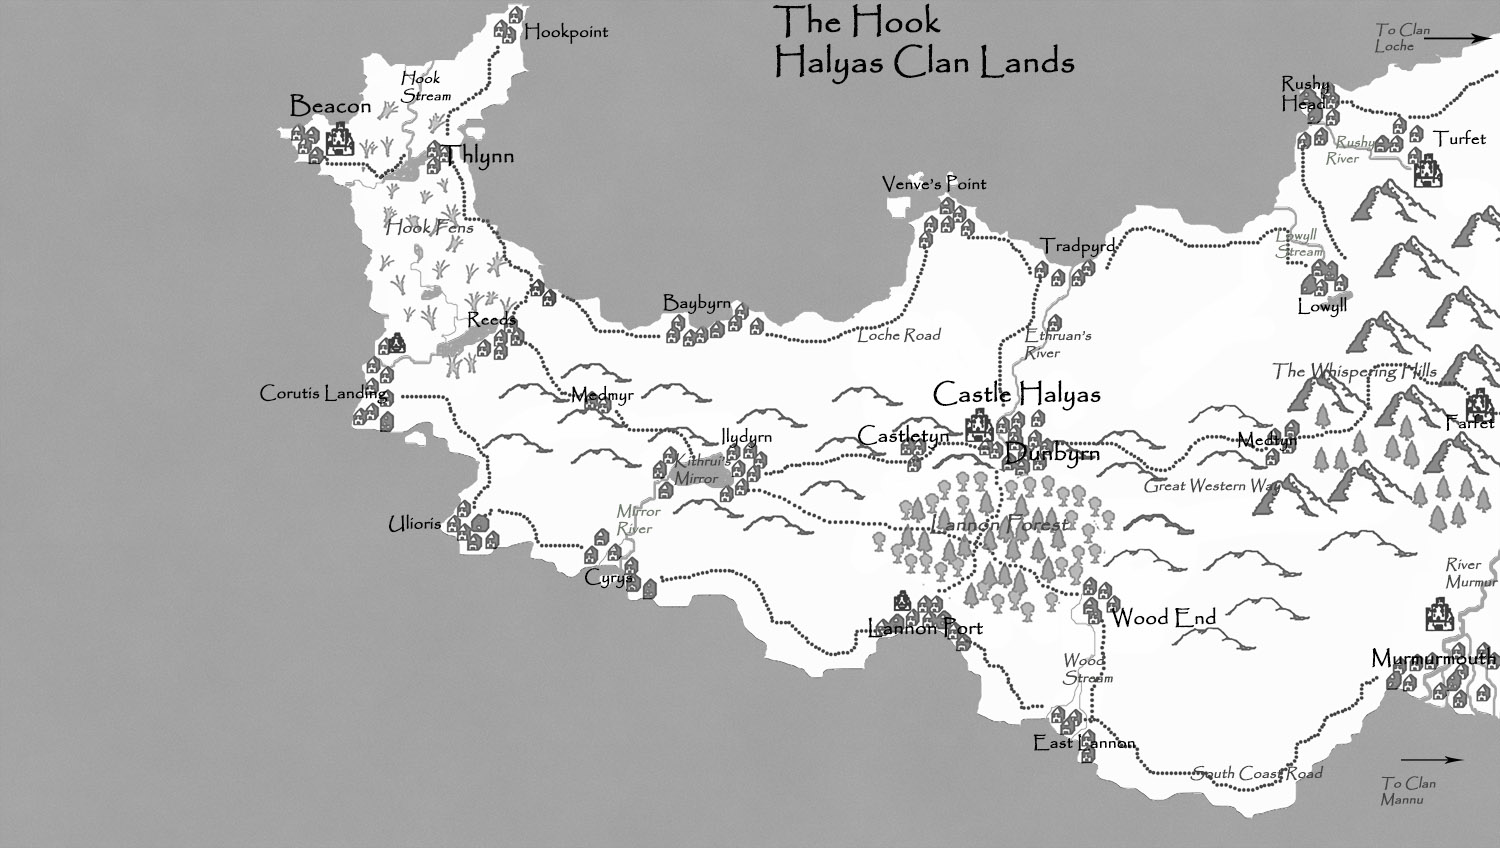 An image showing the map of the lands of the Halyas Clan